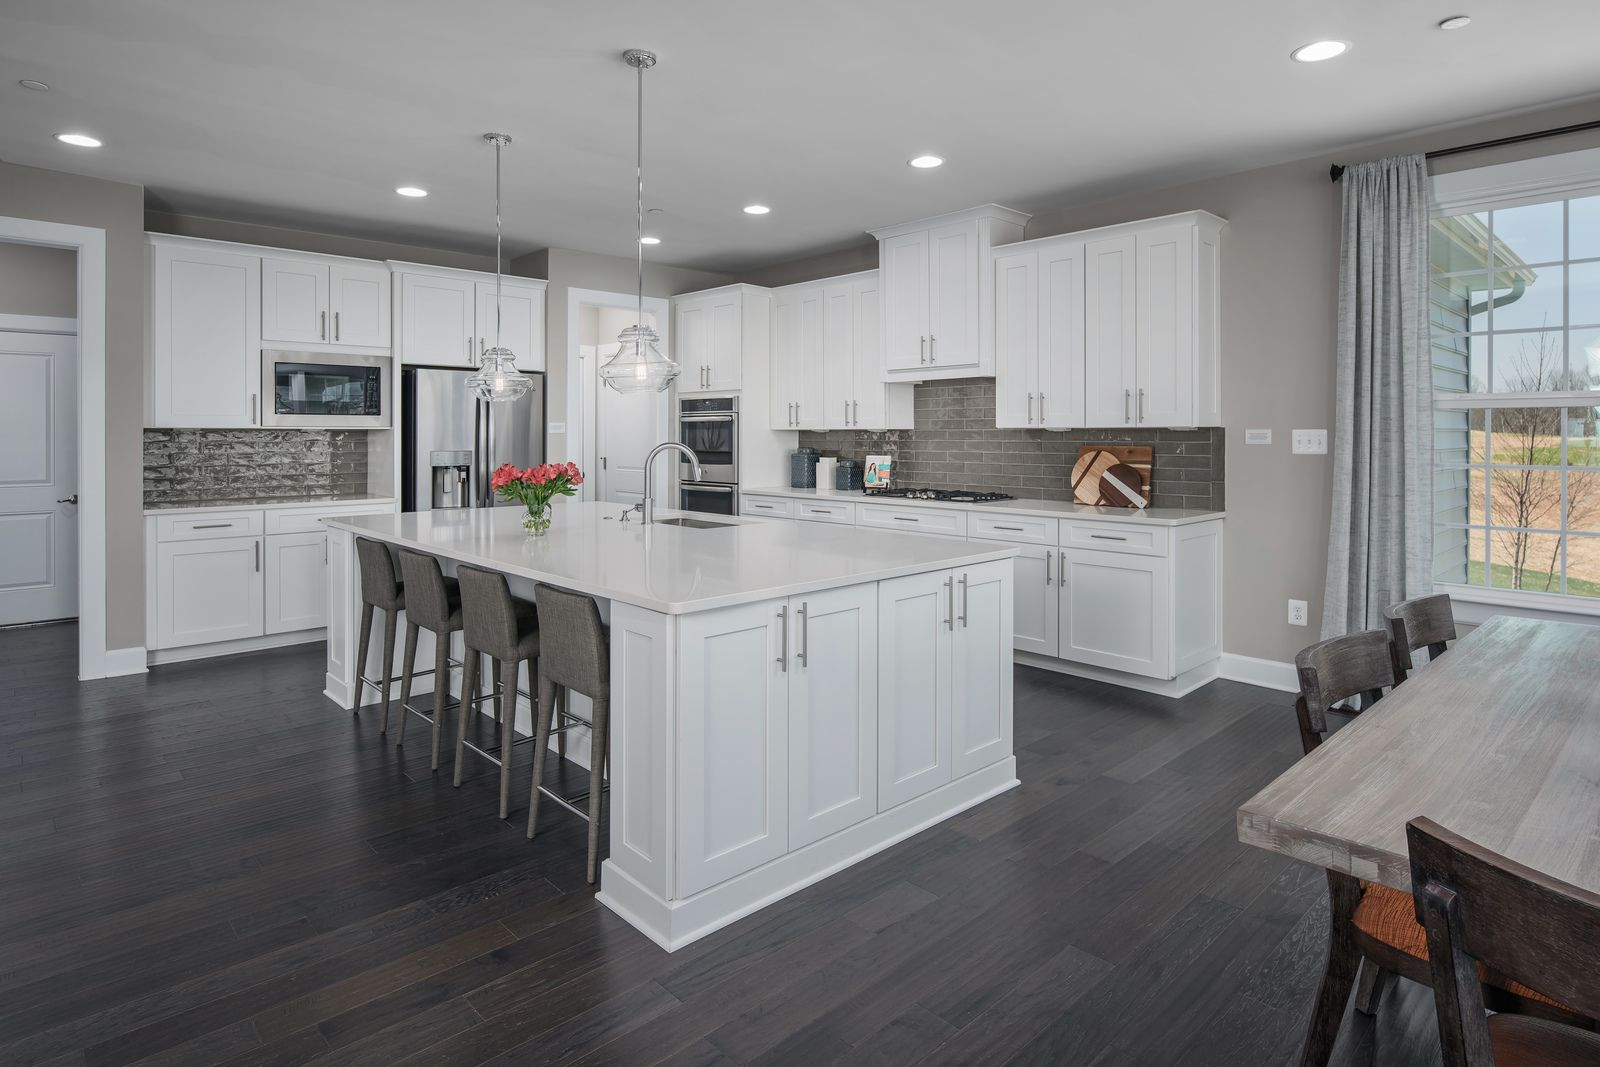 Kitchen featured in the Radford By HeartlandHomes in Morgantown, WV